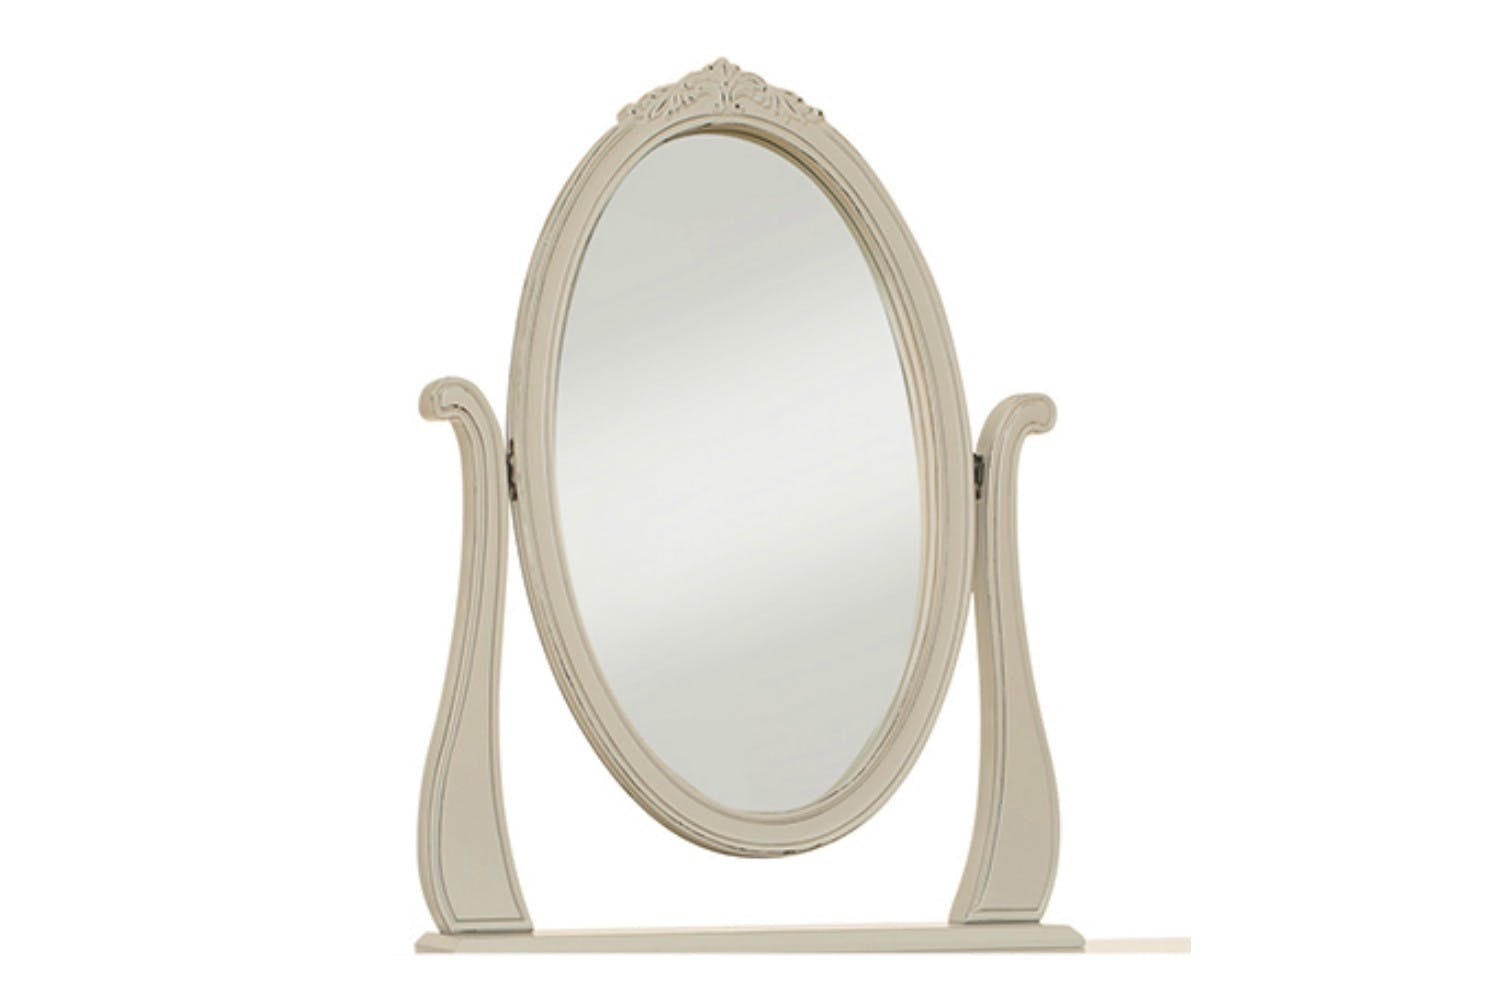 Harrogate Oval Mirror | Antique Grey